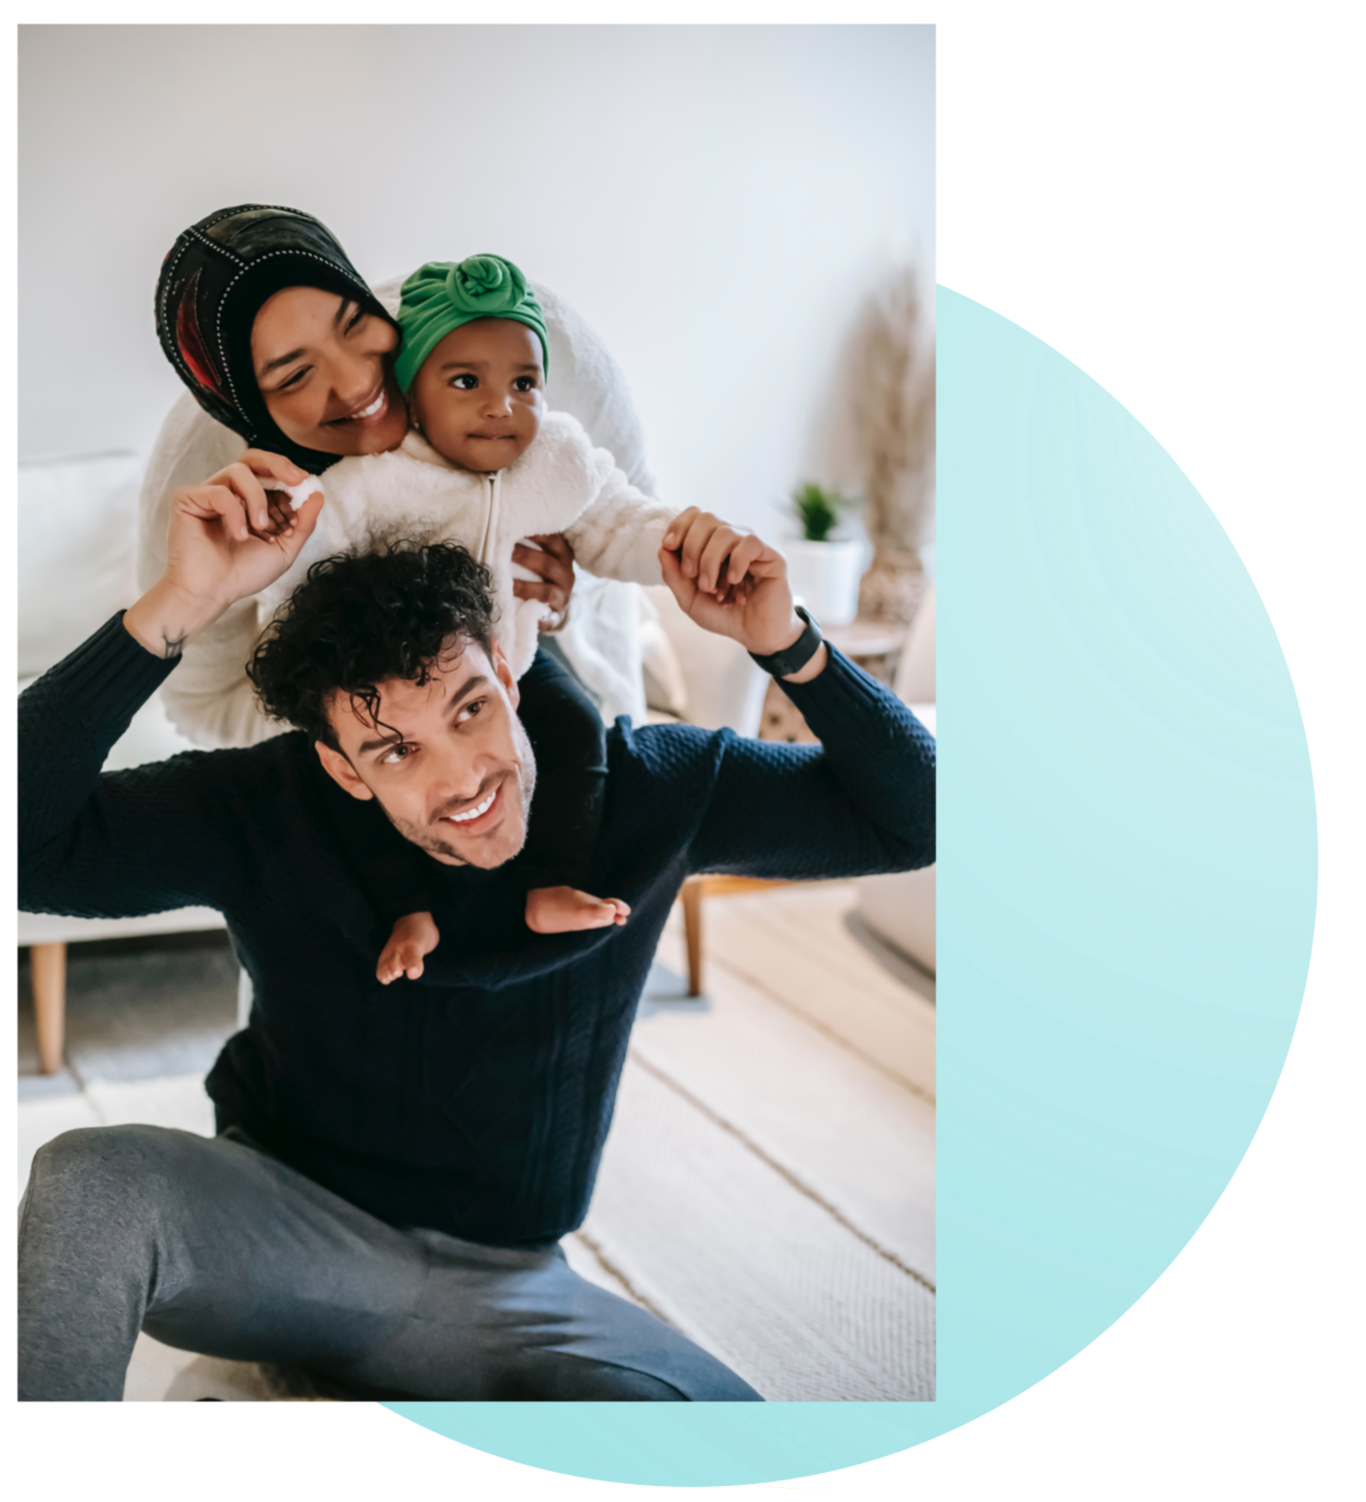 Image of two adults and a baby smiling together in a living room. This image depicts how meeting with a psychiatrist for psychiatric consultations in New York City can help you feel better.   10001   10002   11211